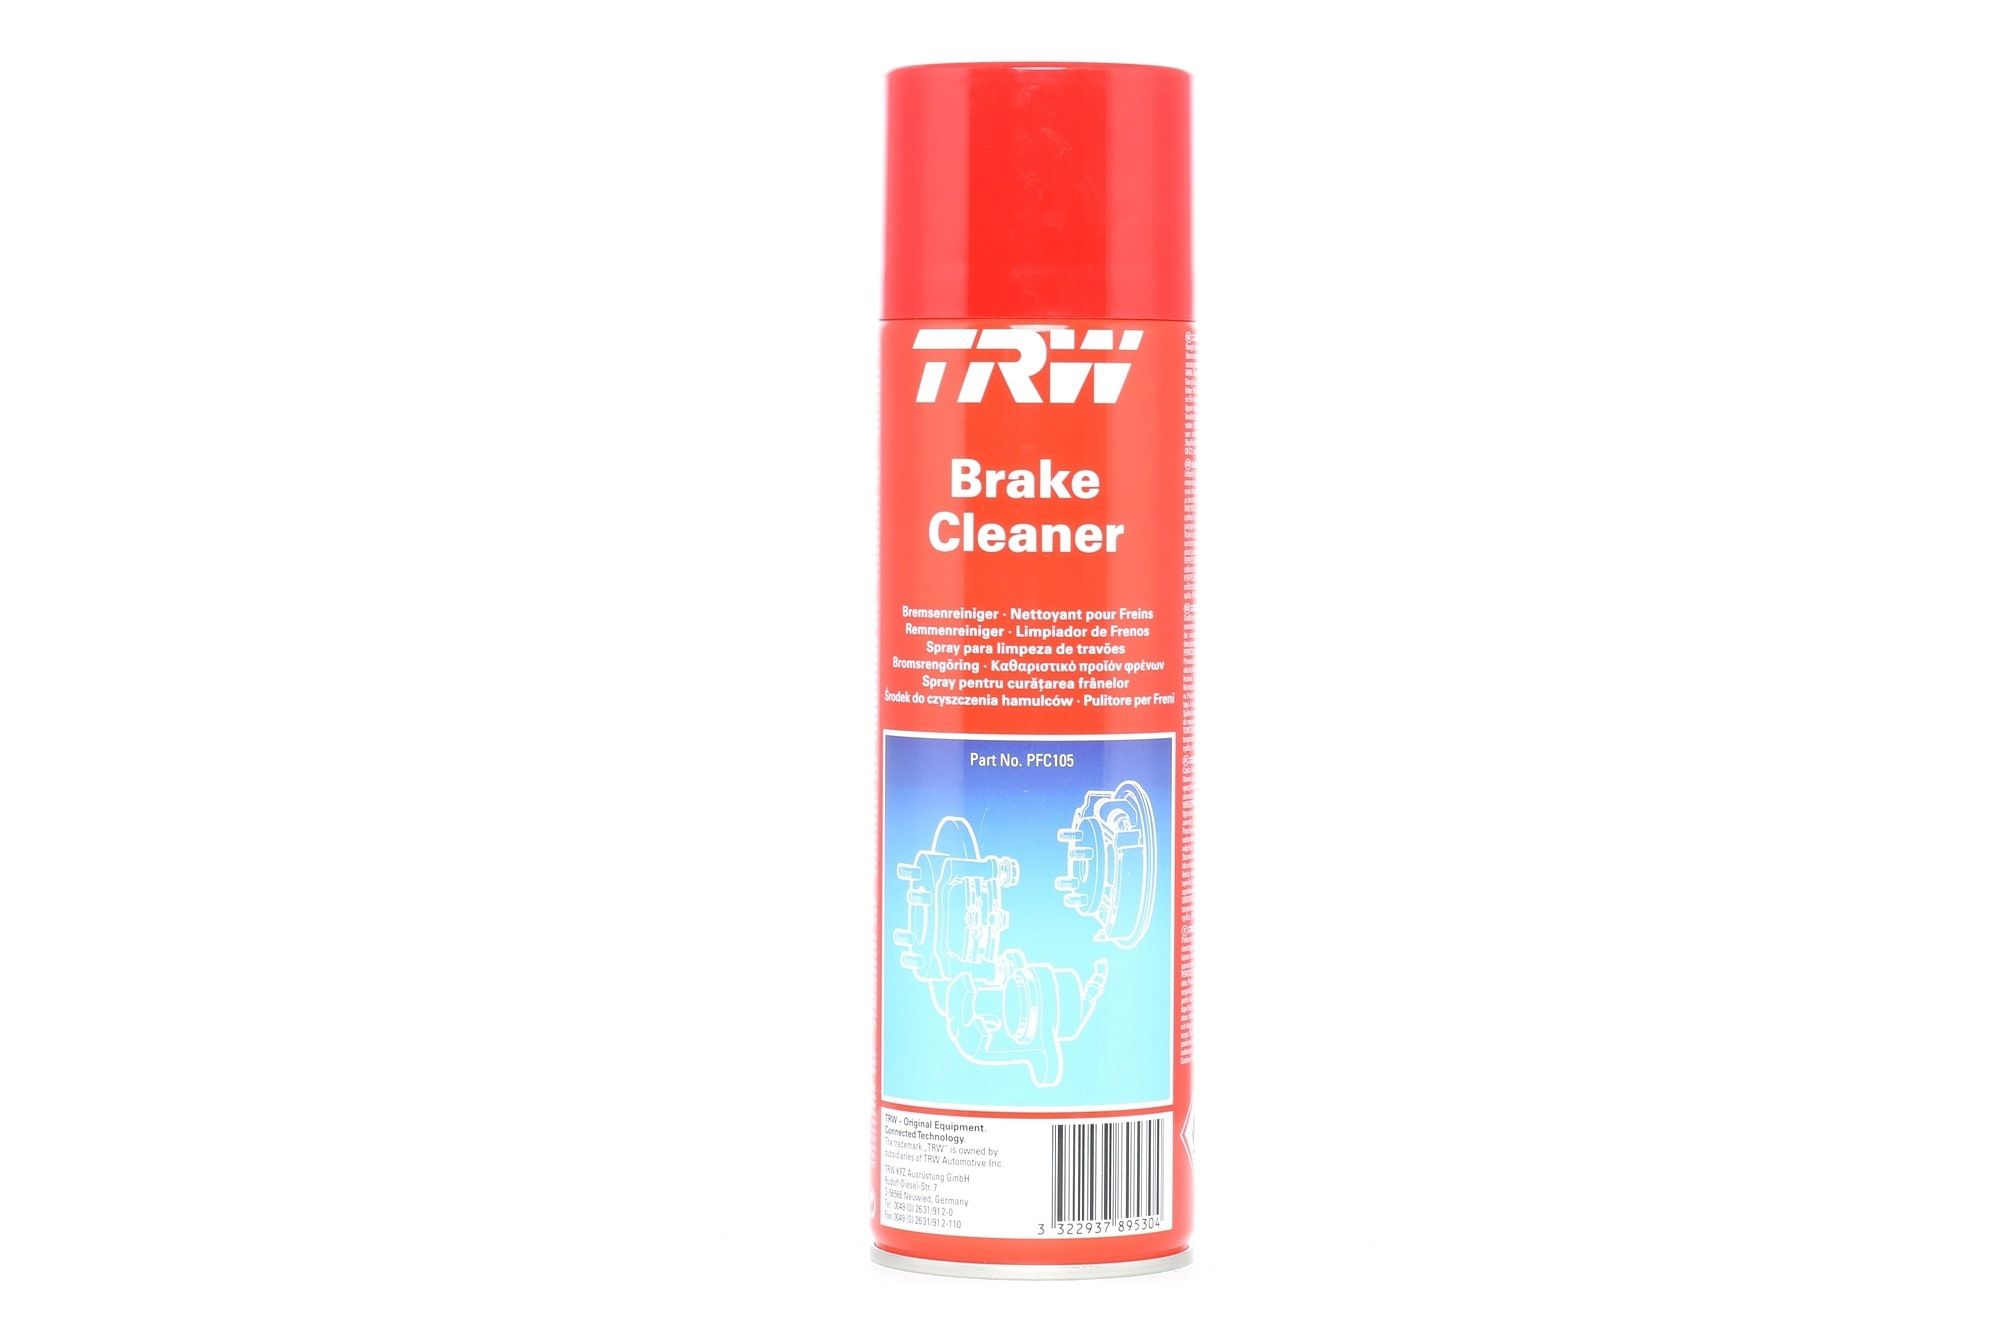 70060 BRAKE / CLUTCH CLEANER PETEC GMBH CONTENTS: 500ML,